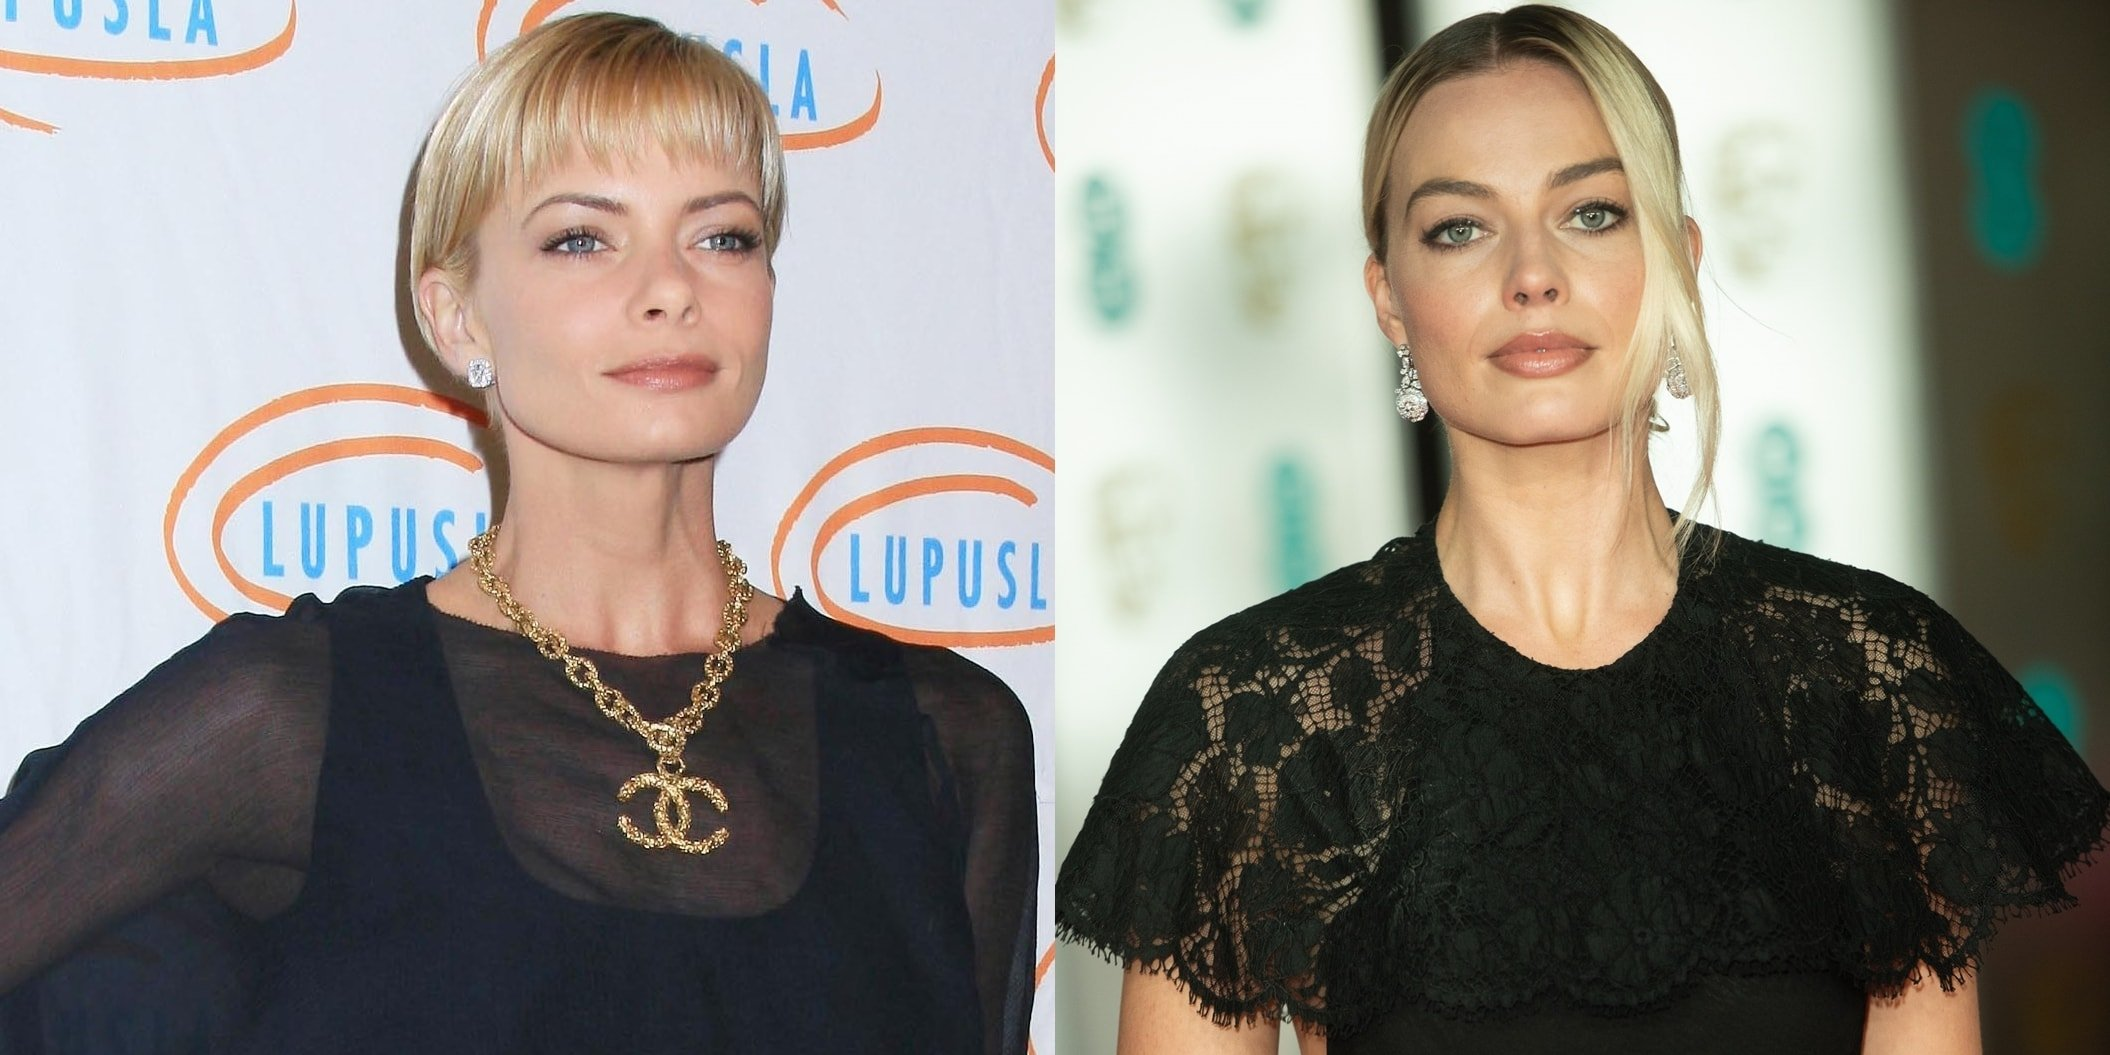 Fans are having a hard time telling Jaime Pressly (L) and Margot Robbie (R) apart